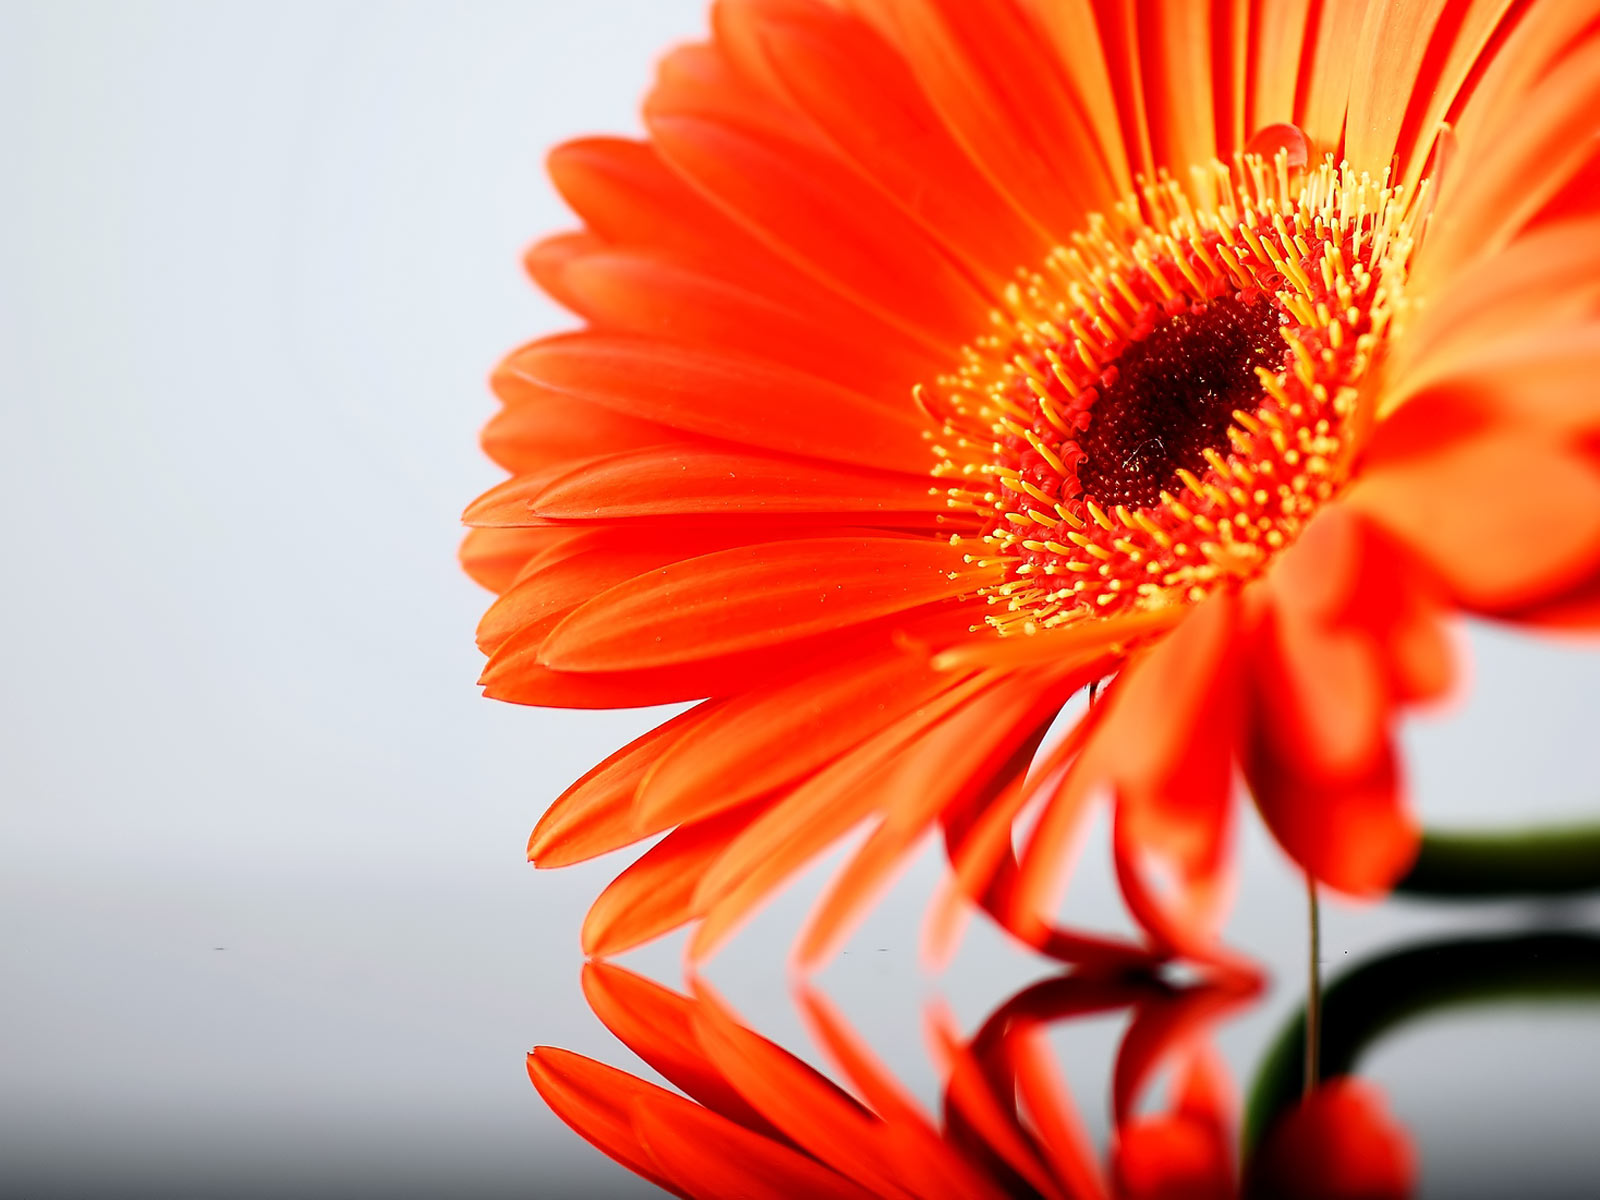 My Background Blog orange flower background 1600x1200